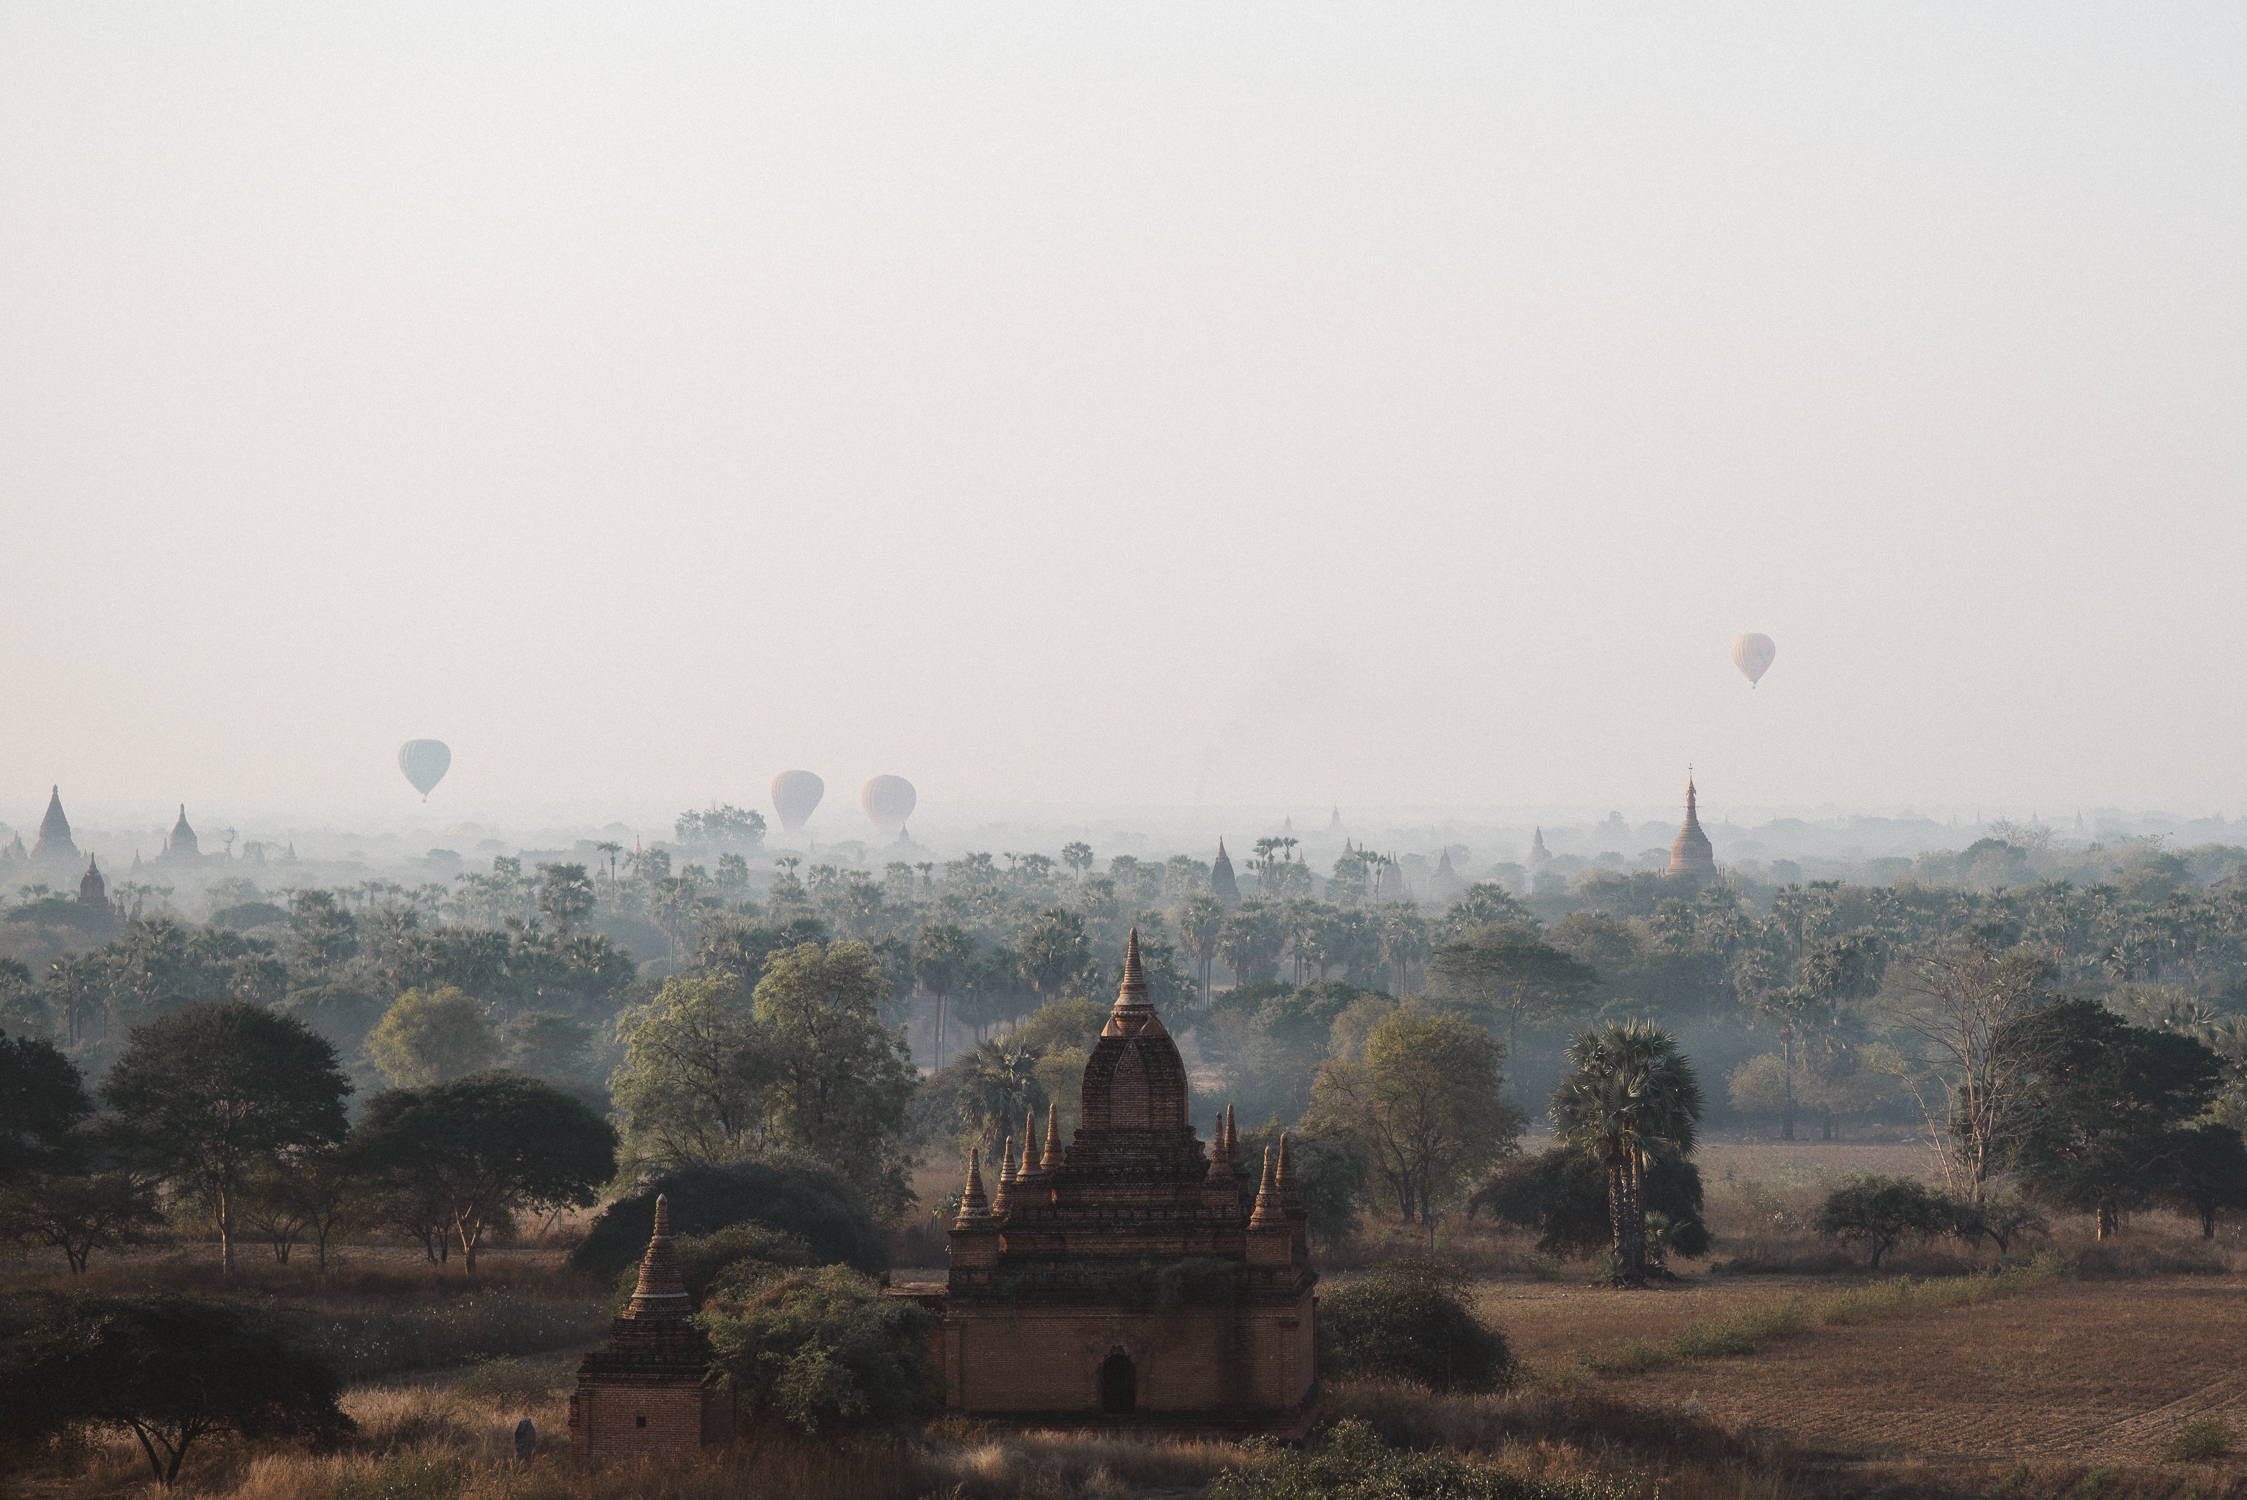 landscape photo of buddhist temples in Pagan, Myanmar